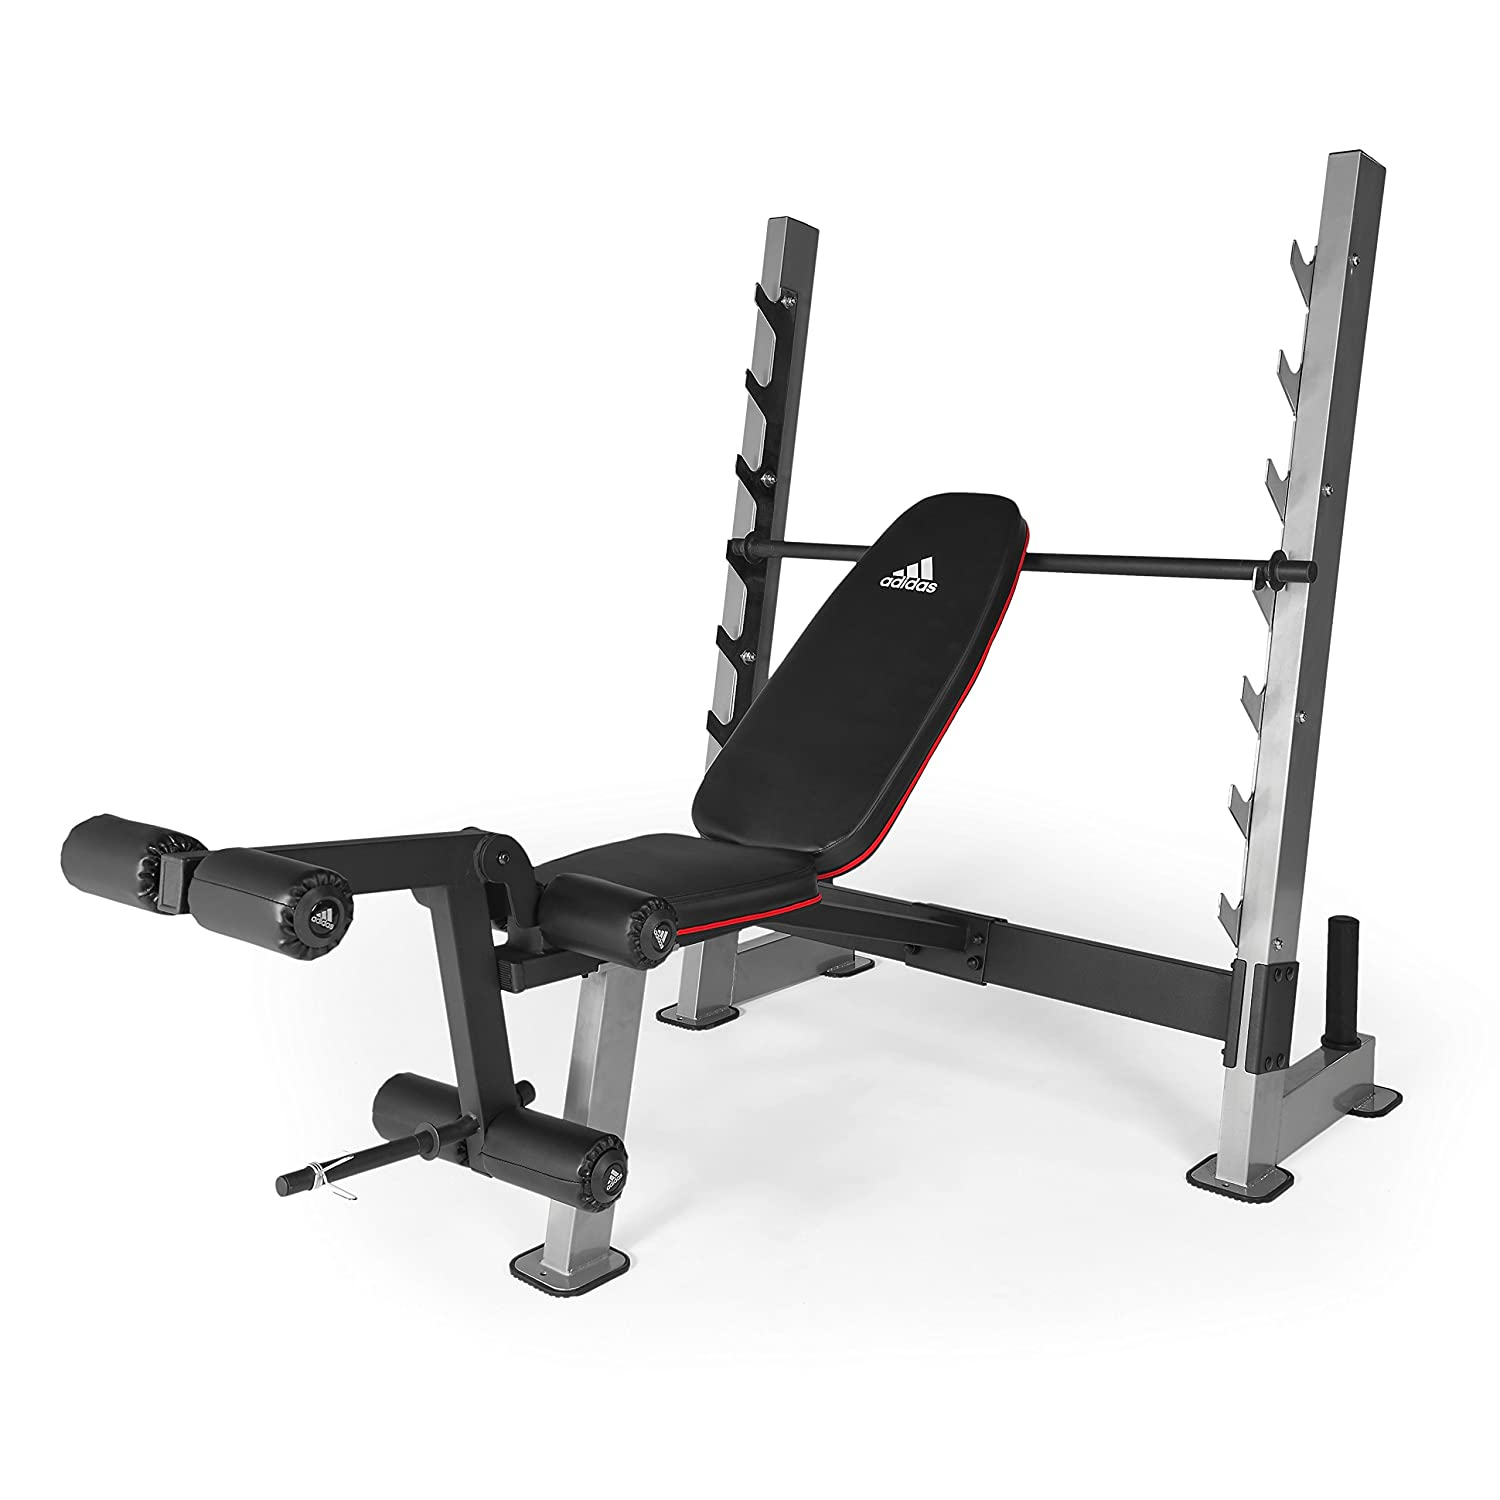 lifting fitexpert press one pull bicep down leg station pm squat developer exercise lats bestpriceshop and equipment a squ barbell bench each weight end feature of develop rack htm helps this sale i muscles dumbbell set